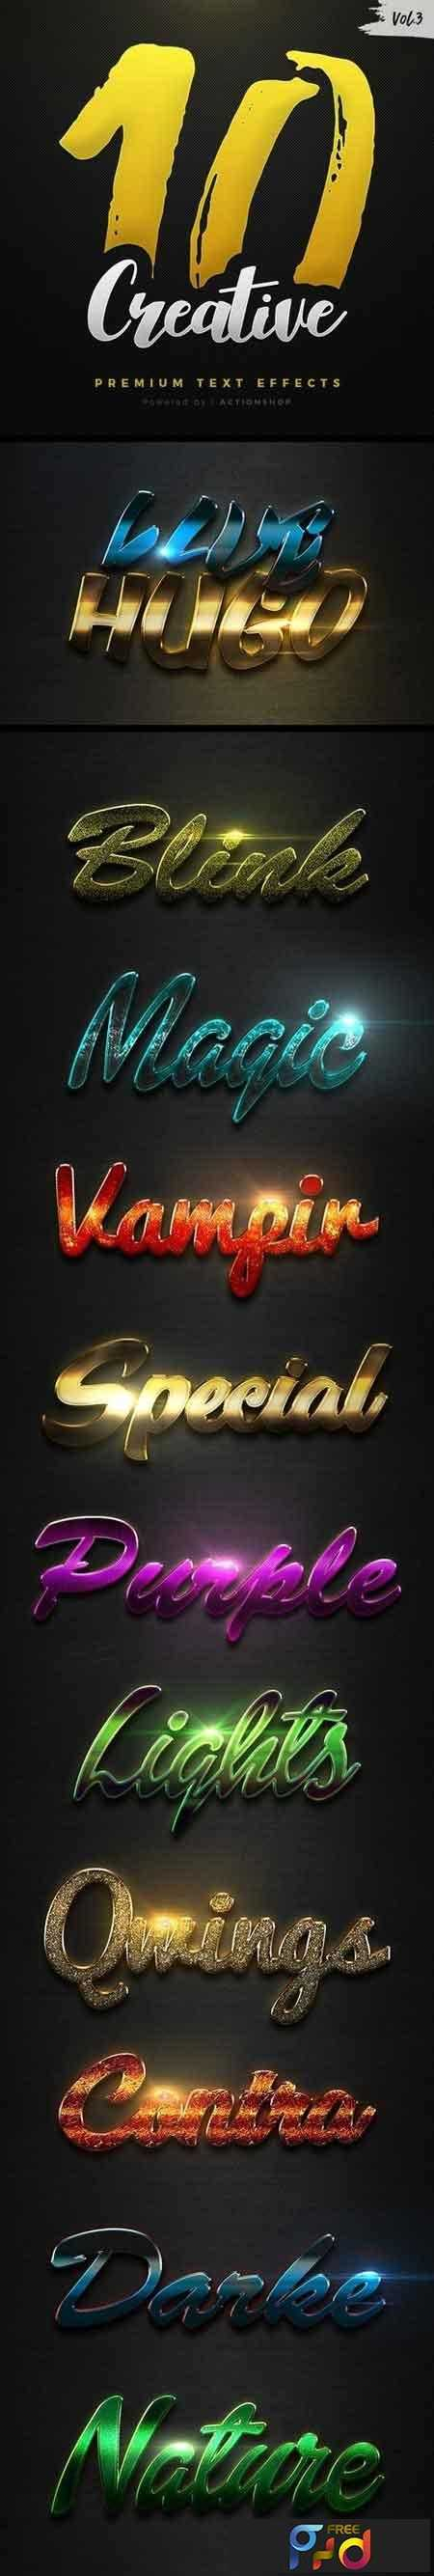 1810172 10 Creative Text Effects Vol.3 20994151 1